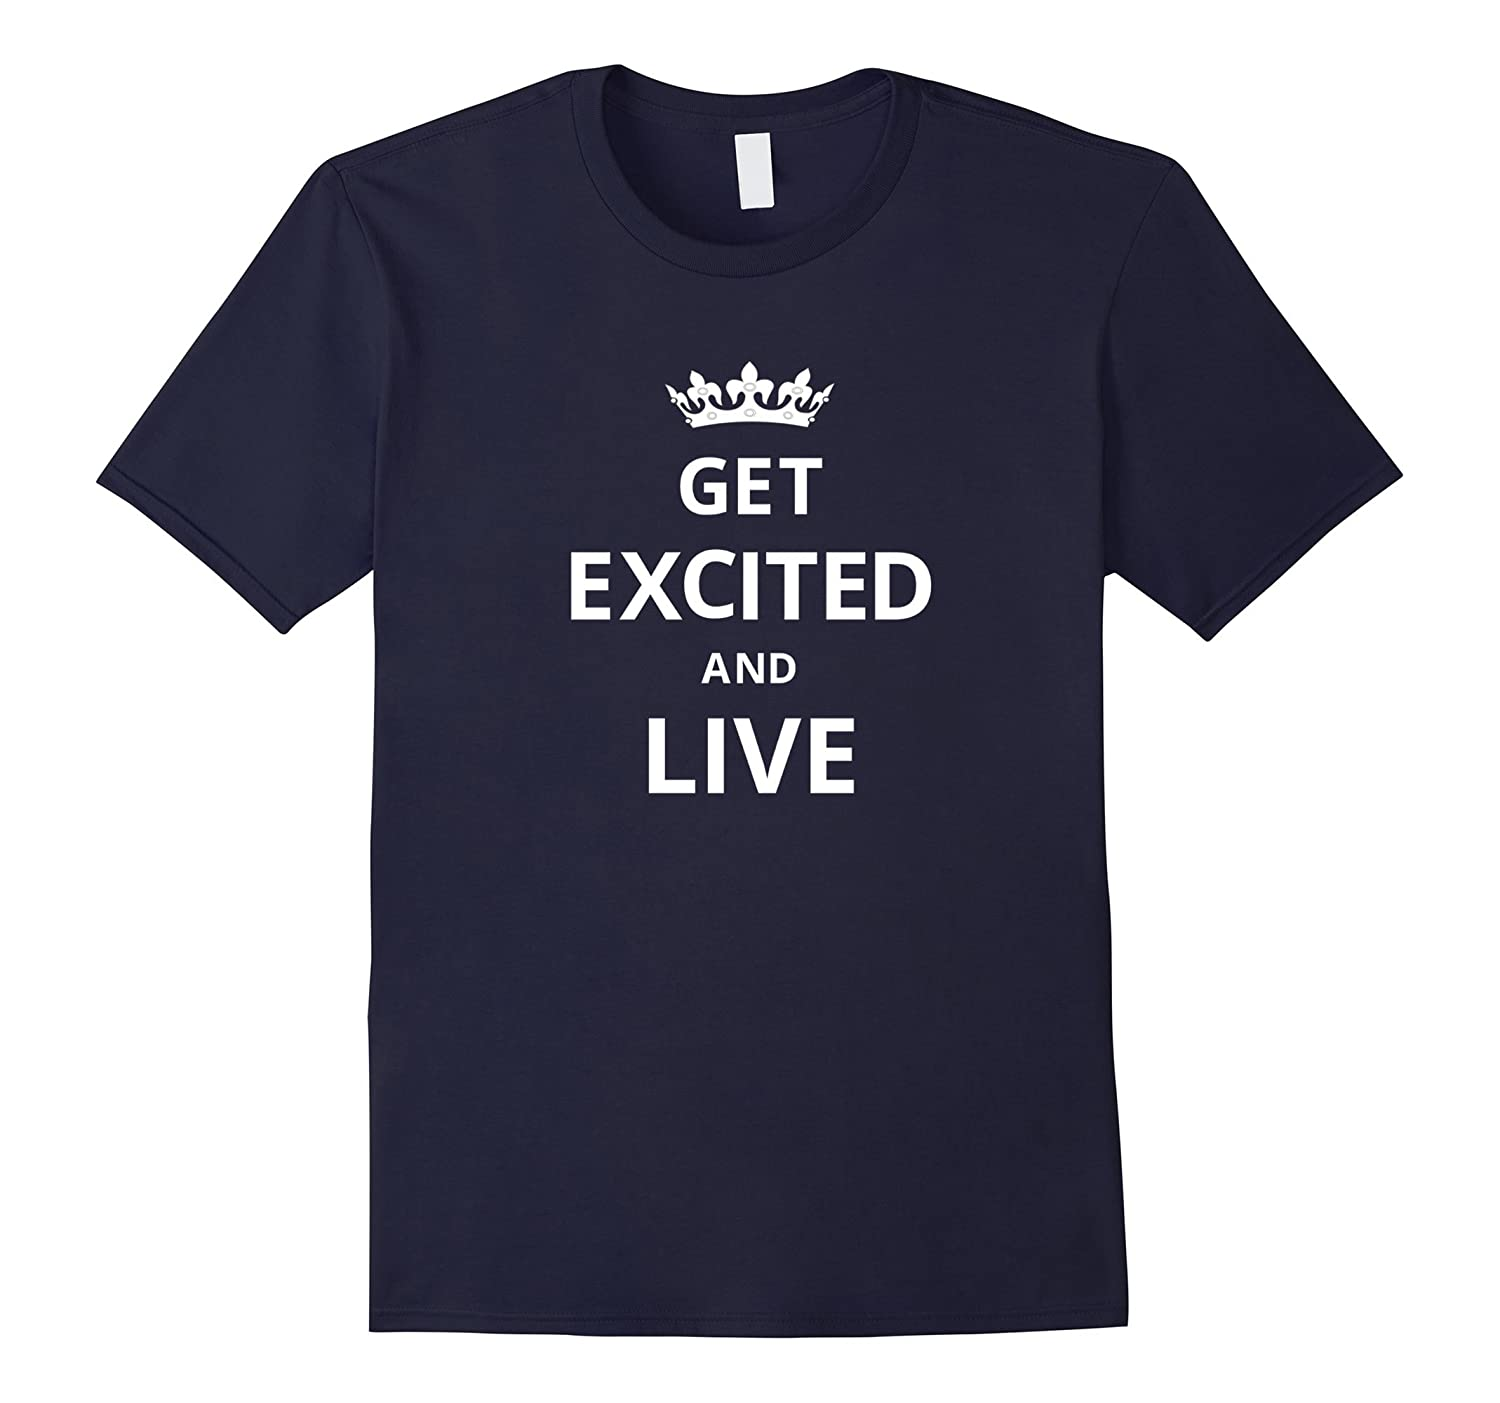 Get Excited and LIVE motivational T-Shirt Classic Fit